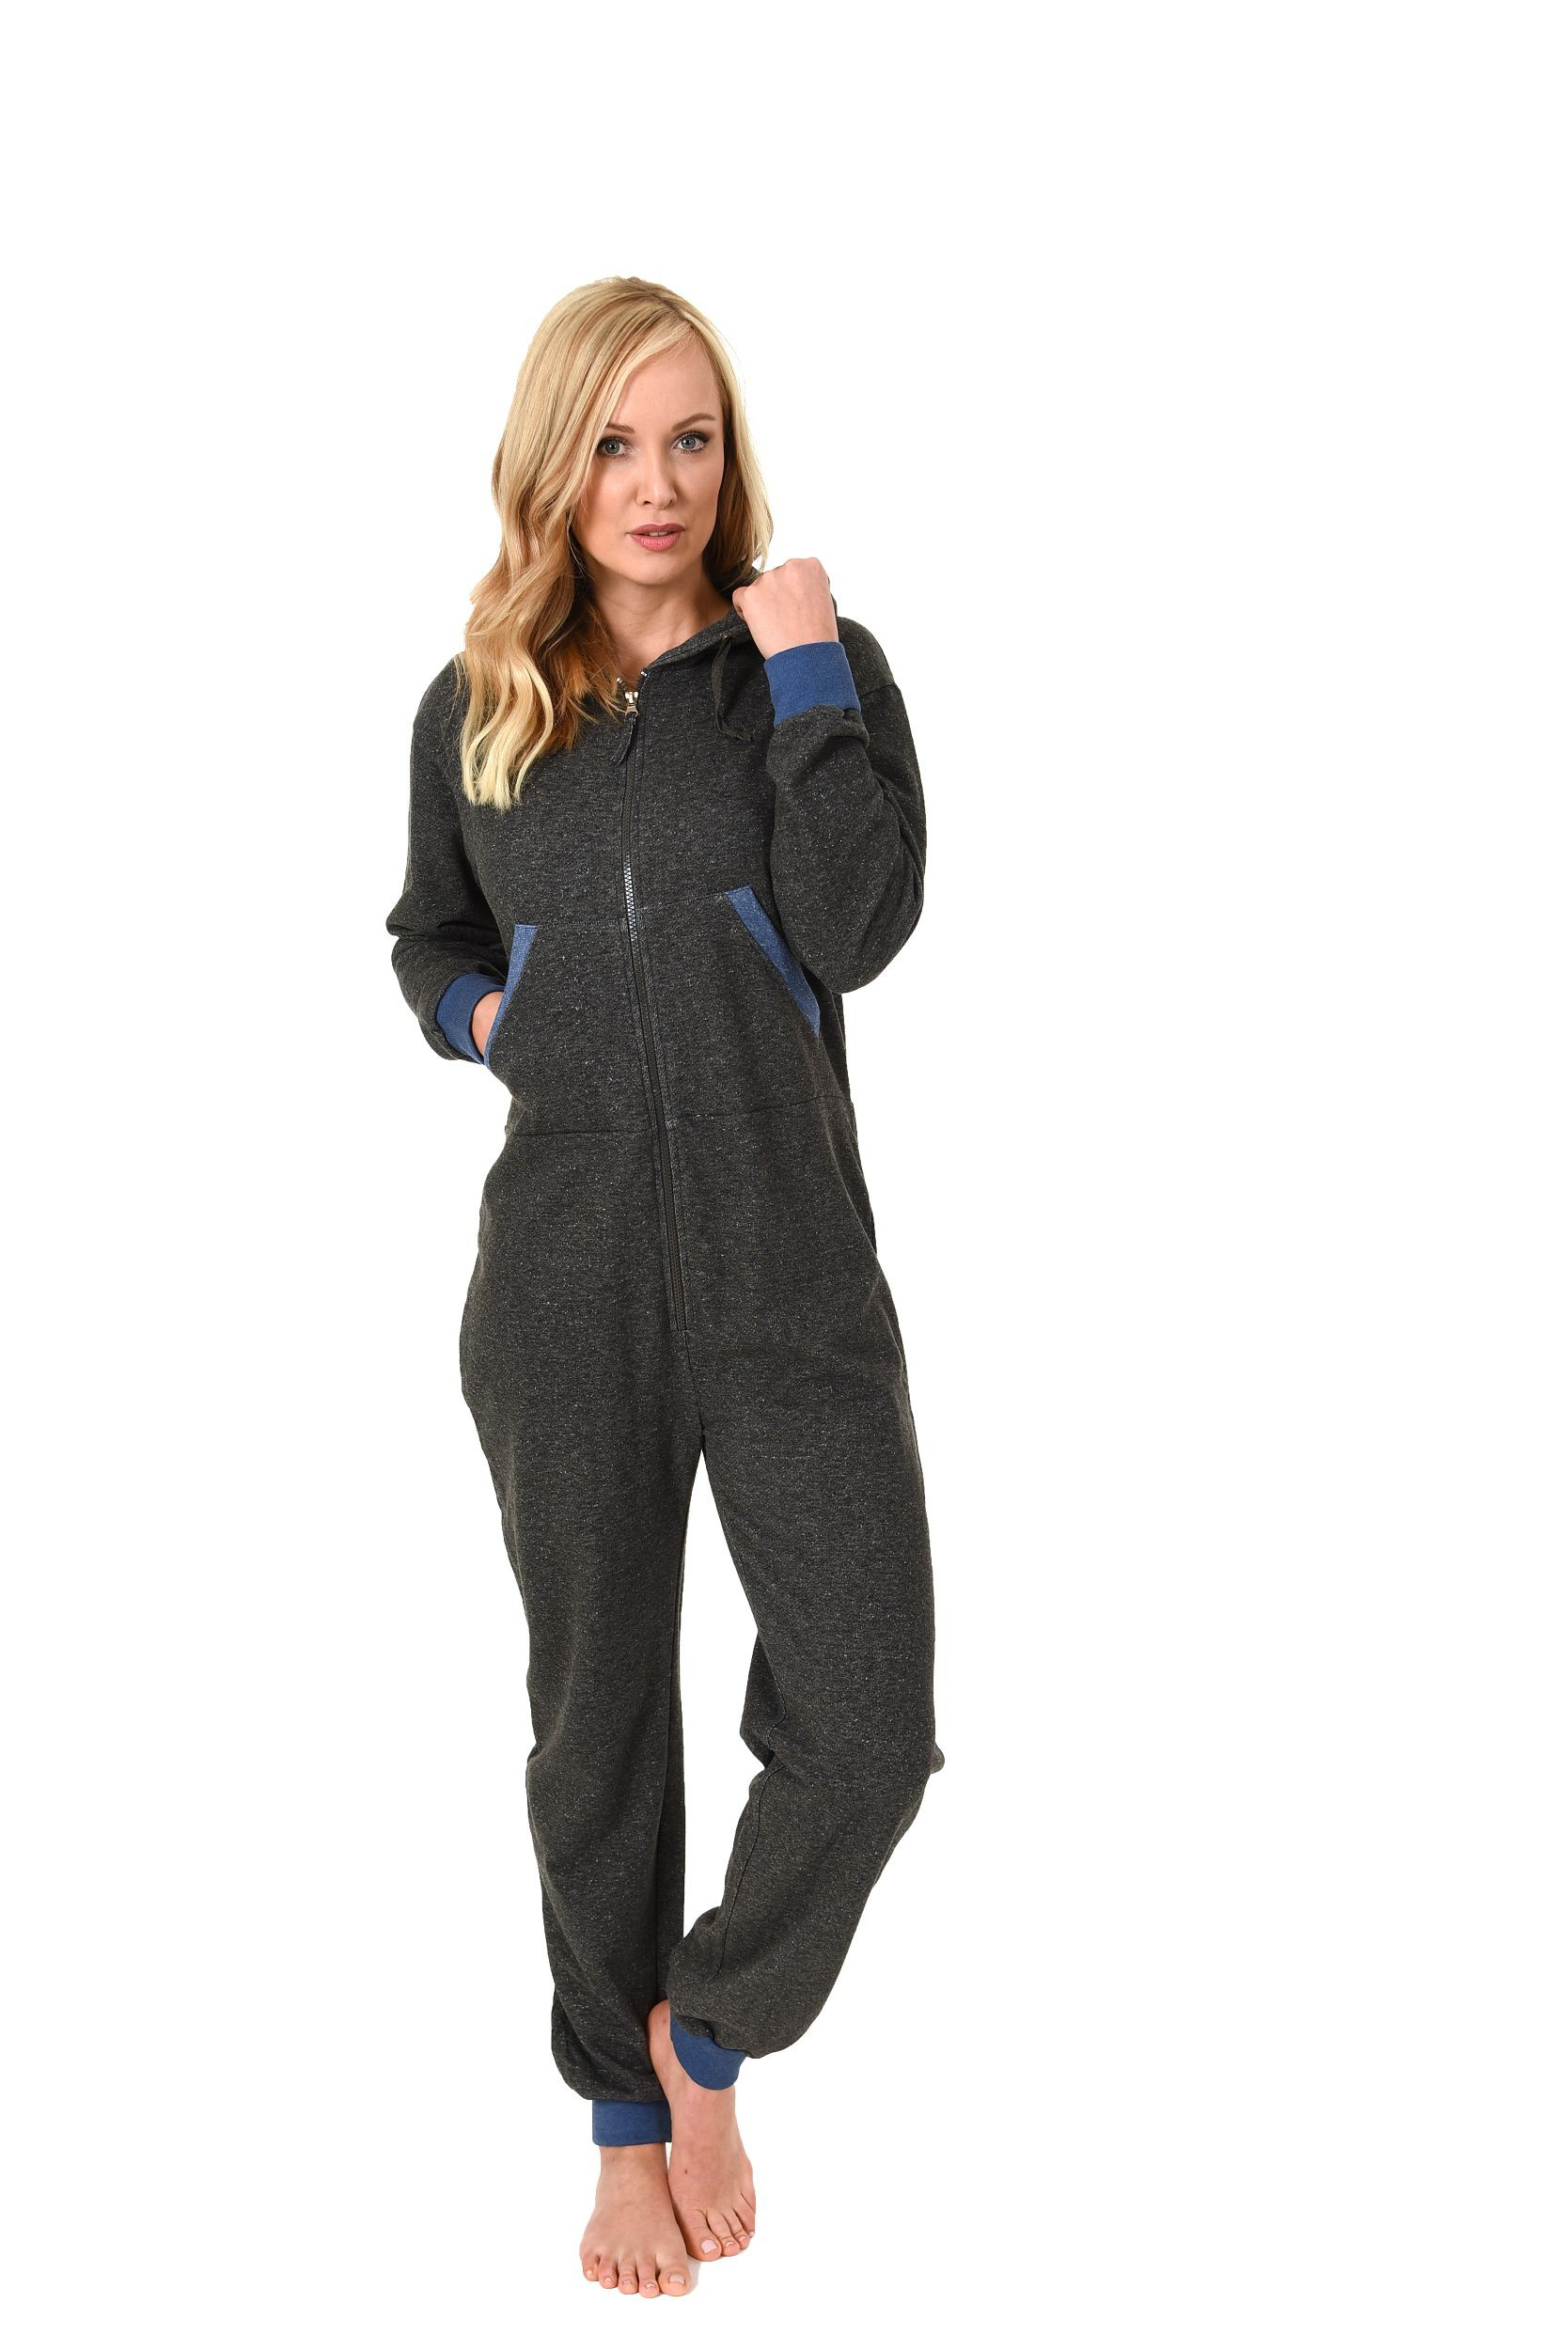 damen jumpsuit overall schlafanzug onesie einteiler langarm 271 267 99 444. Black Bedroom Furniture Sets. Home Design Ideas